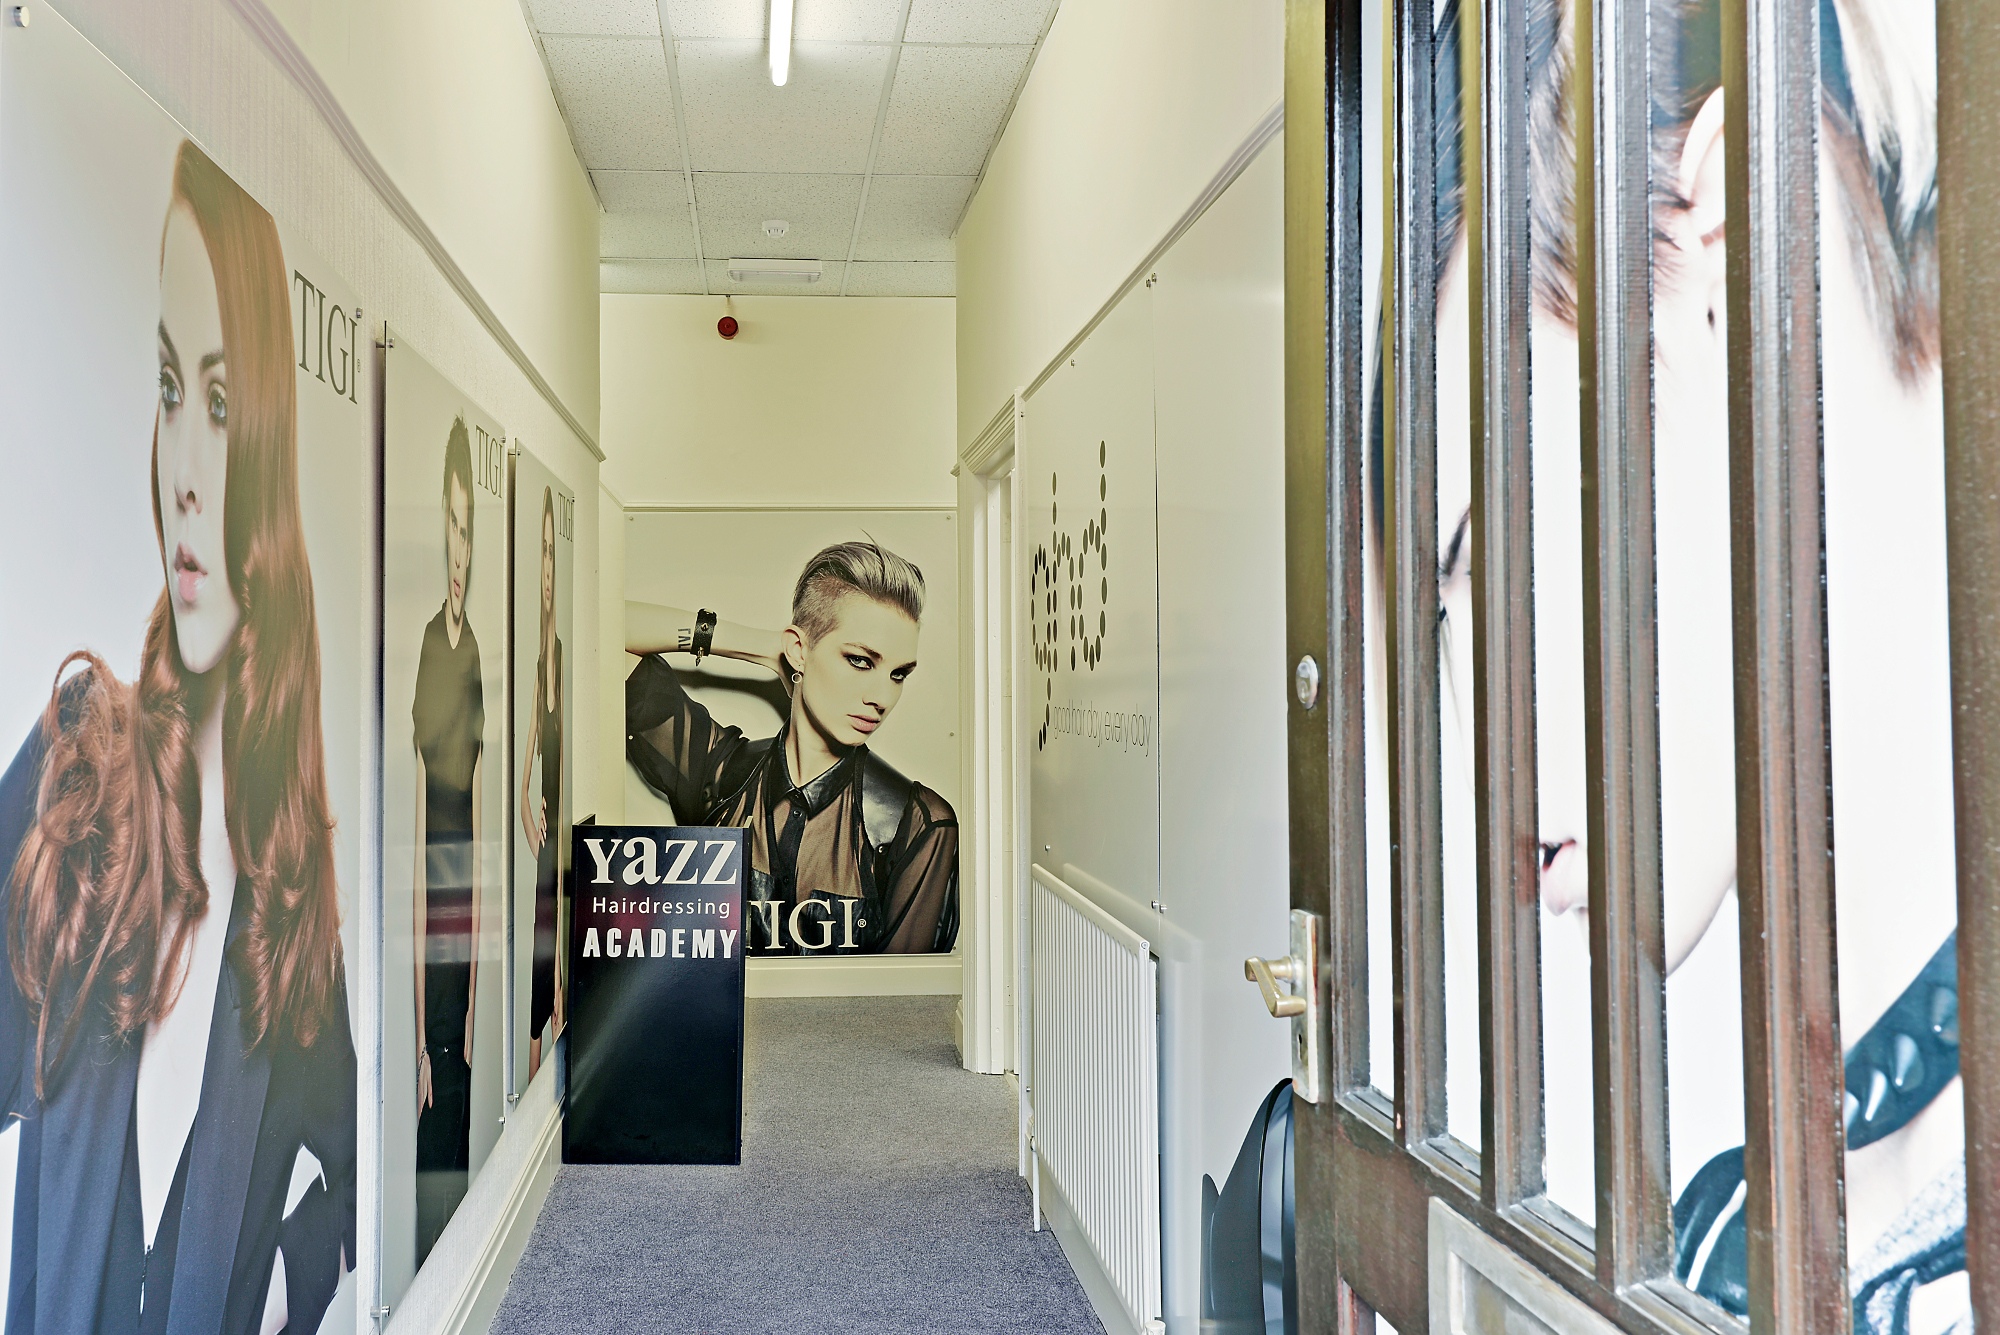 Yazz-Academy-internal-031